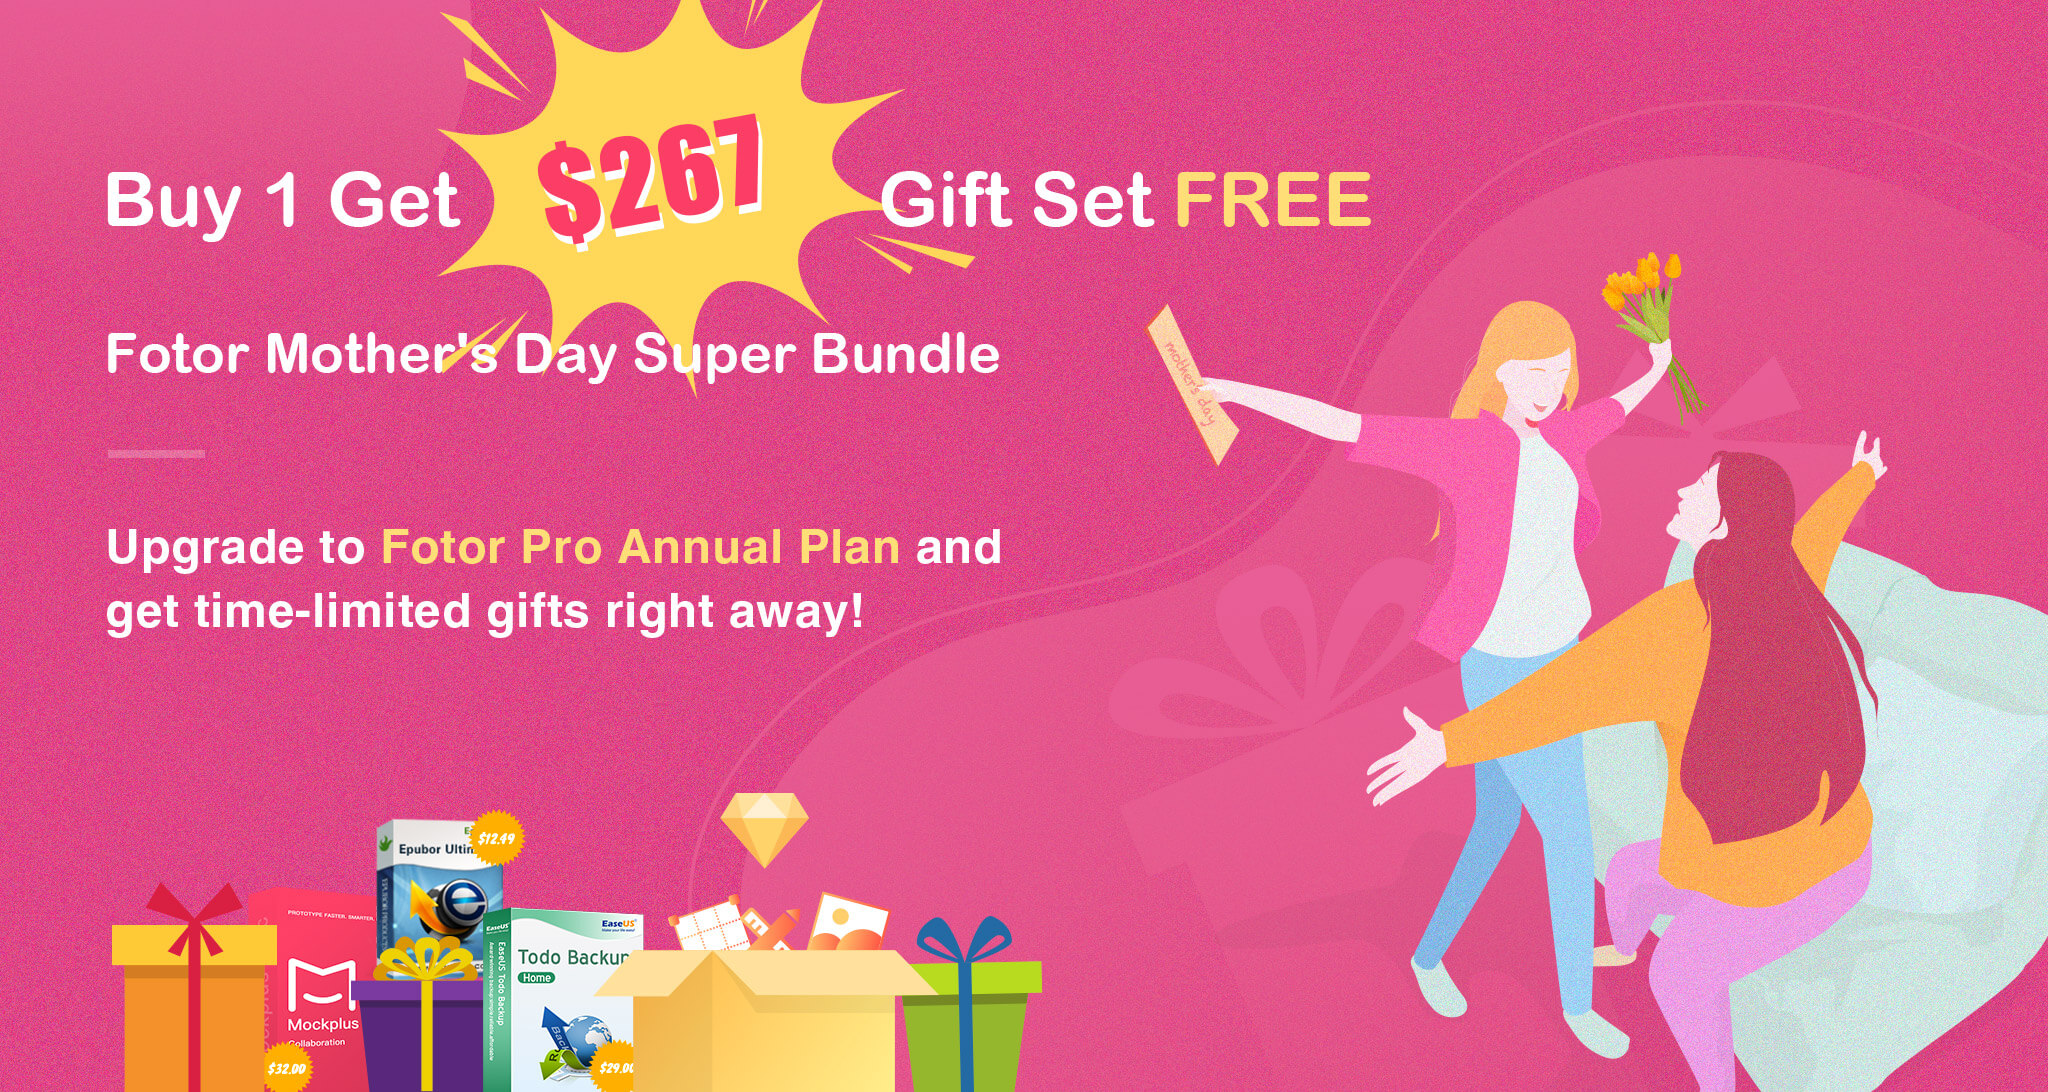 Fotor Mother's Day Super Bundle